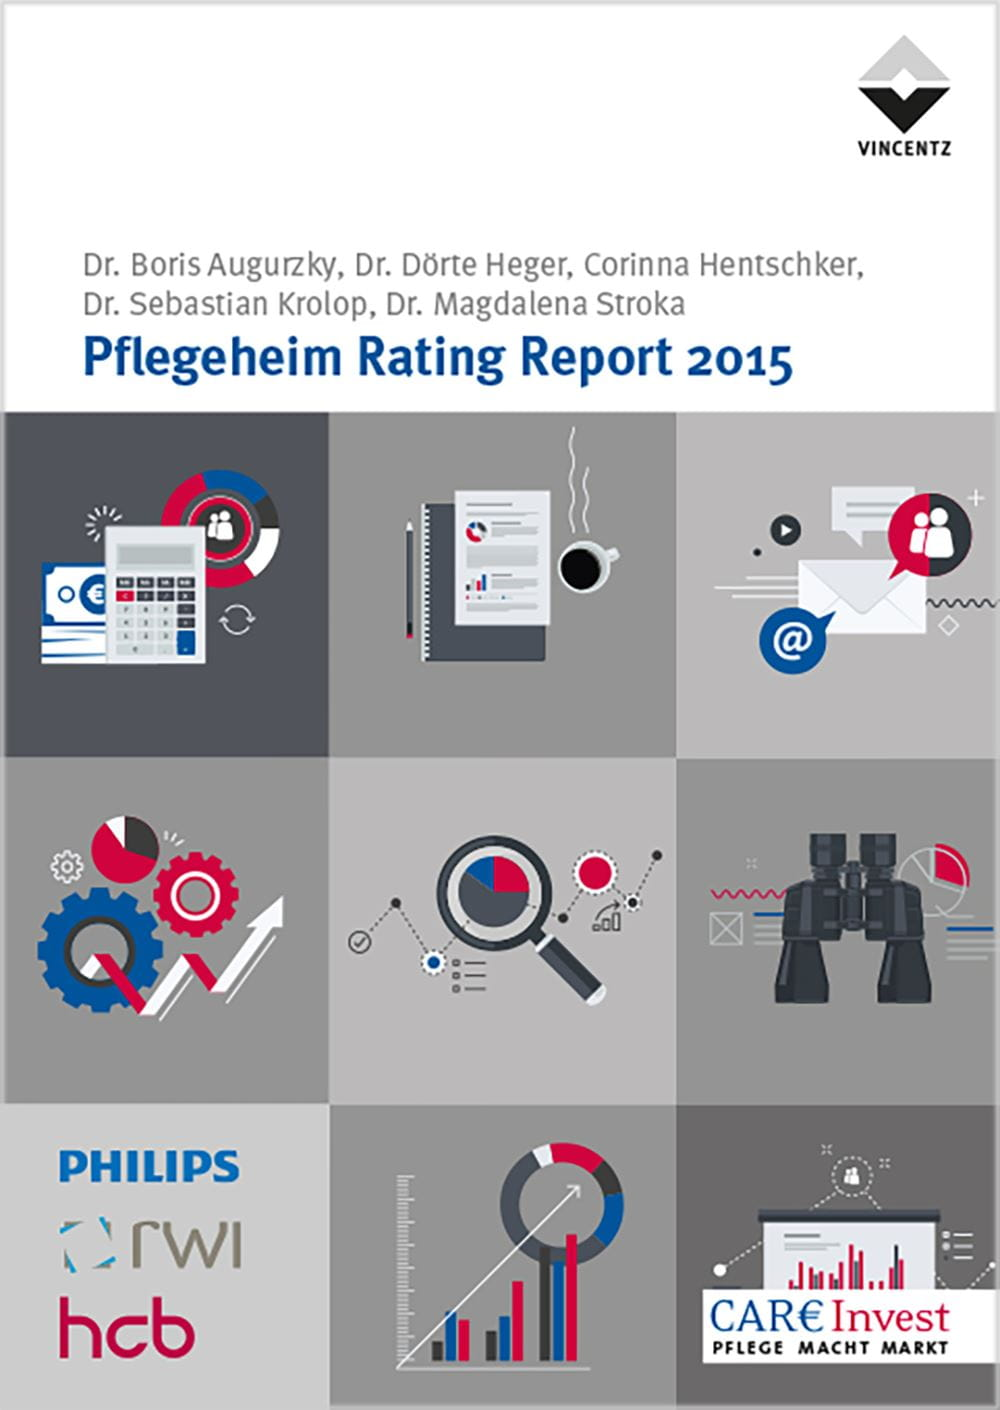 Pflegeheim Rating Report